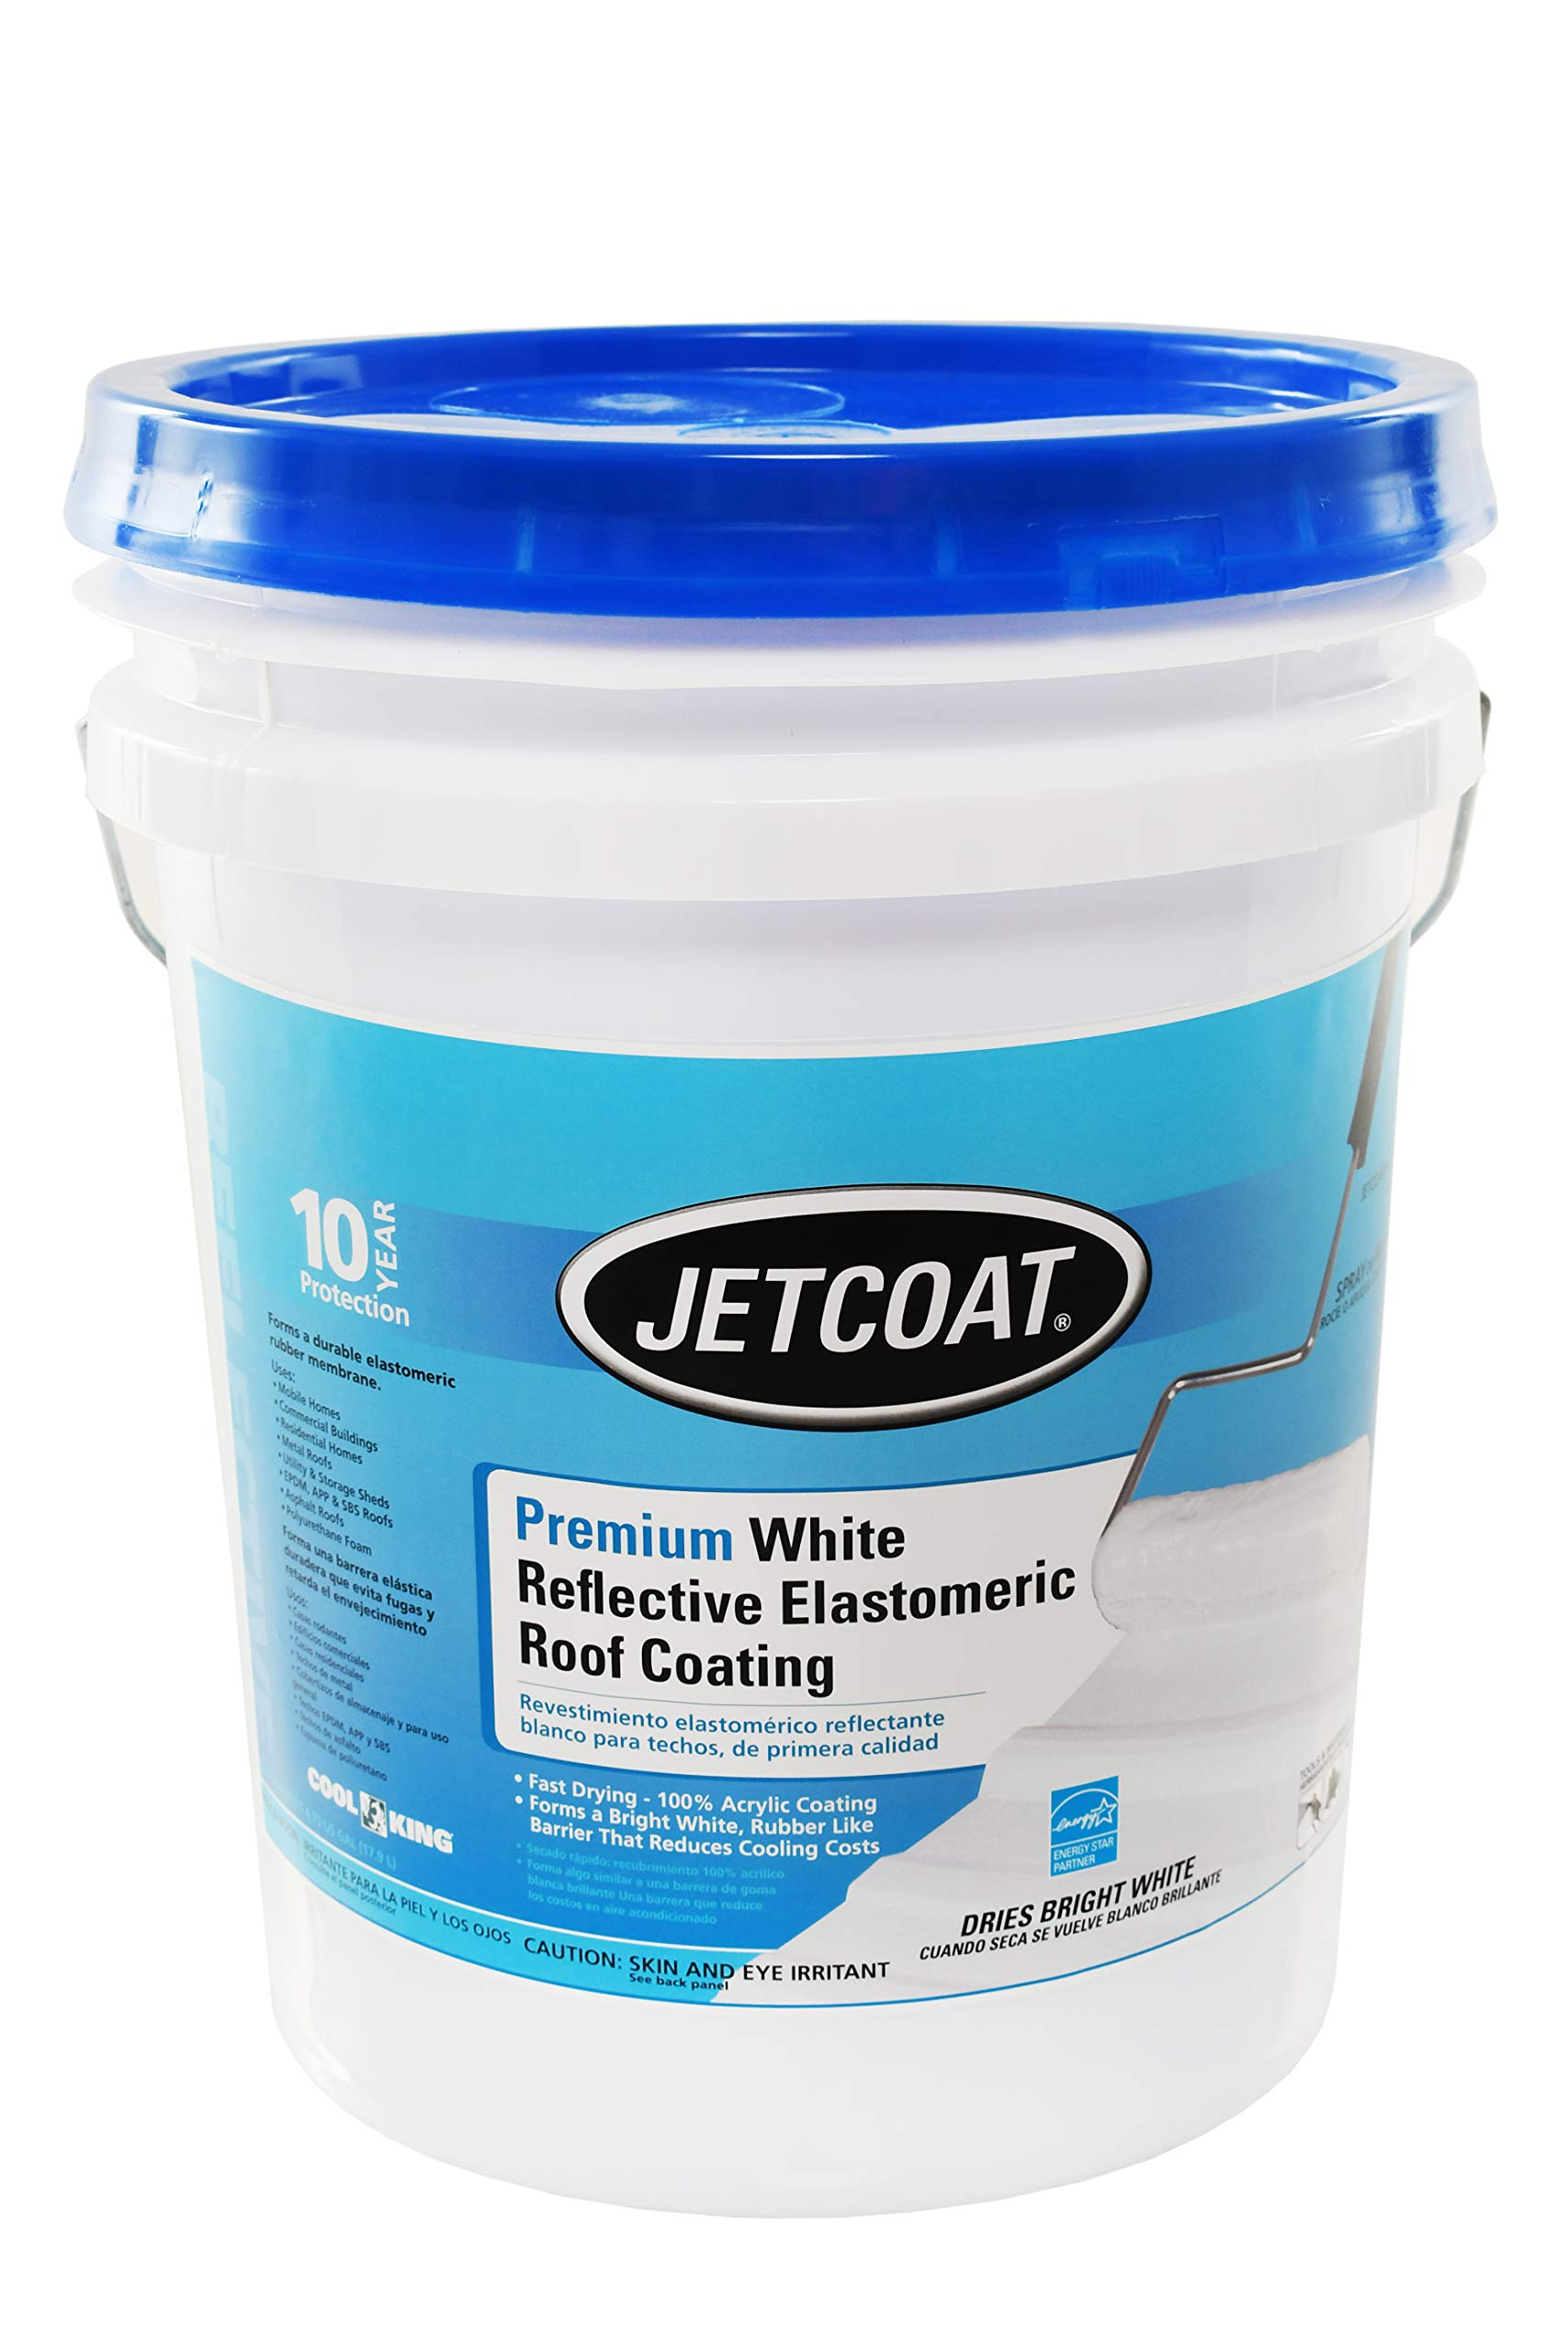 Jetcoat Cool King Elastomeric Acrylic Reflective Roof Coating, White, 5 Gallon, 10 Year Protection by Jetcoat (Image #1)